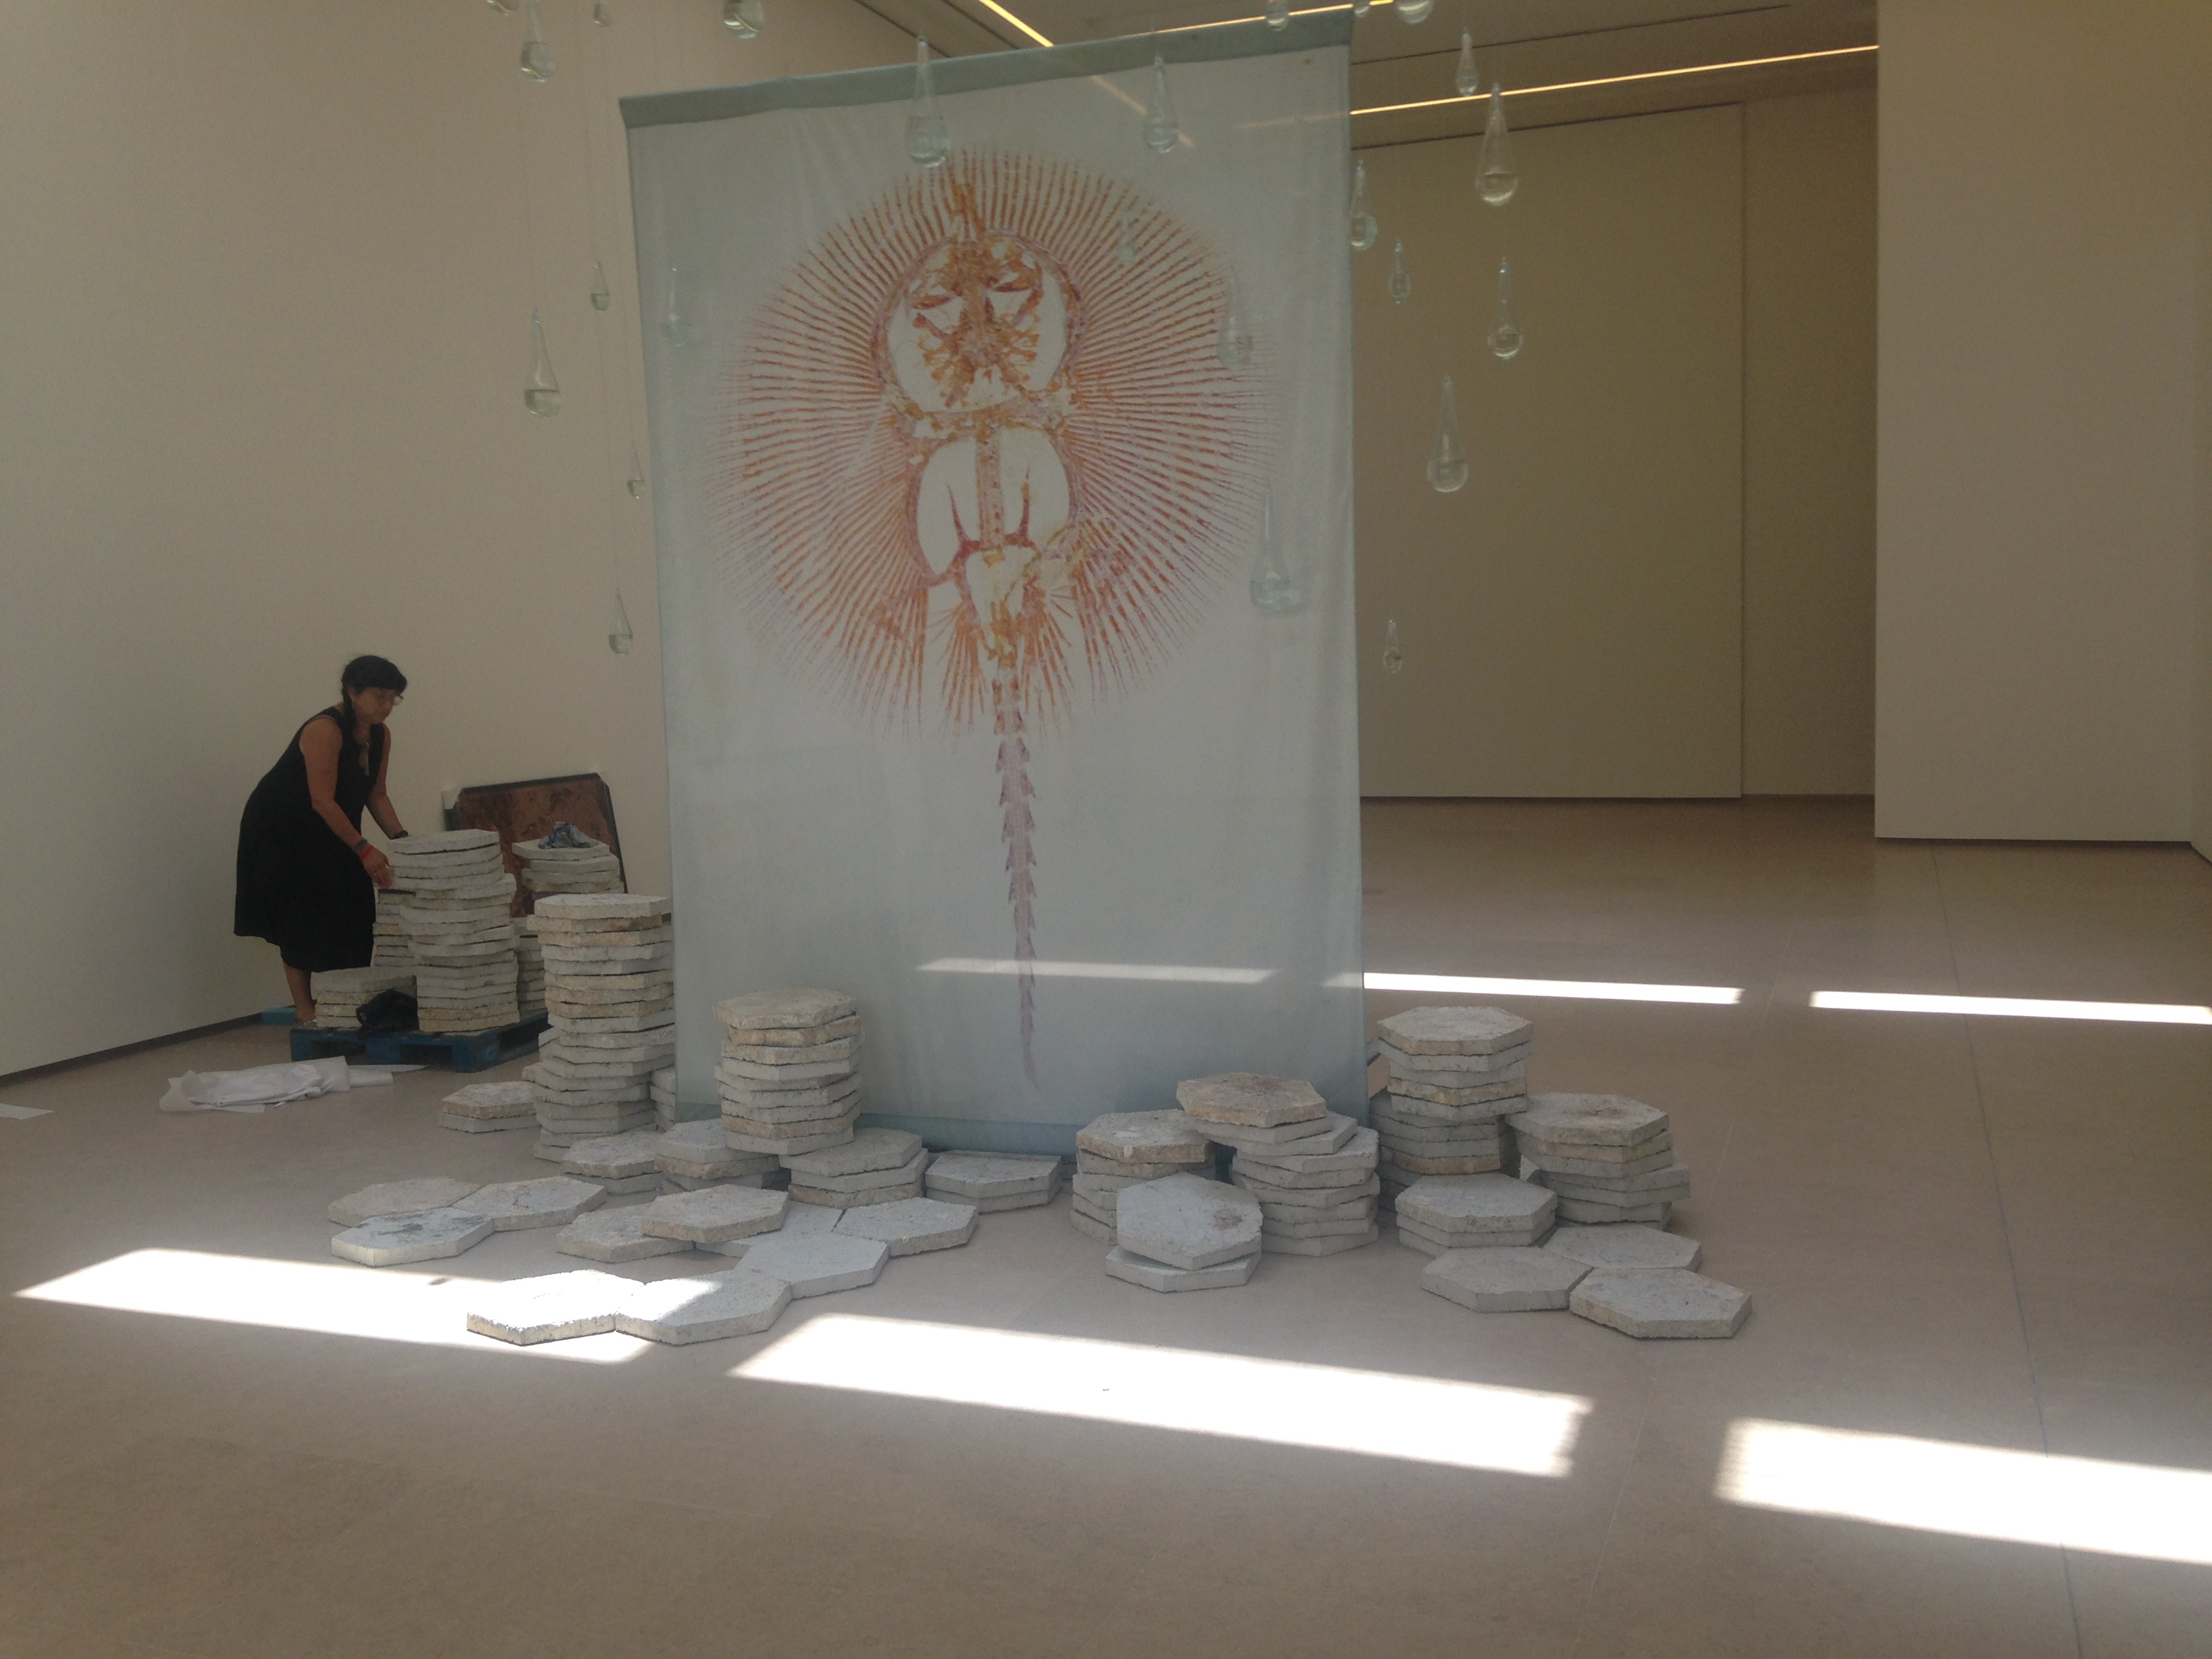 Claire Pentecost installing her work Amor Fati, 2016 (consisting of polluted water from Lebanese sources, hand-blown glass, tiles made of recycled paper, printed banner with an image of the fossil of cyclobatis), at the exhibition Let's Talk about the Weather at the Sursock Museum, Beirut. Photo by Natasa Petresin Bachelez.